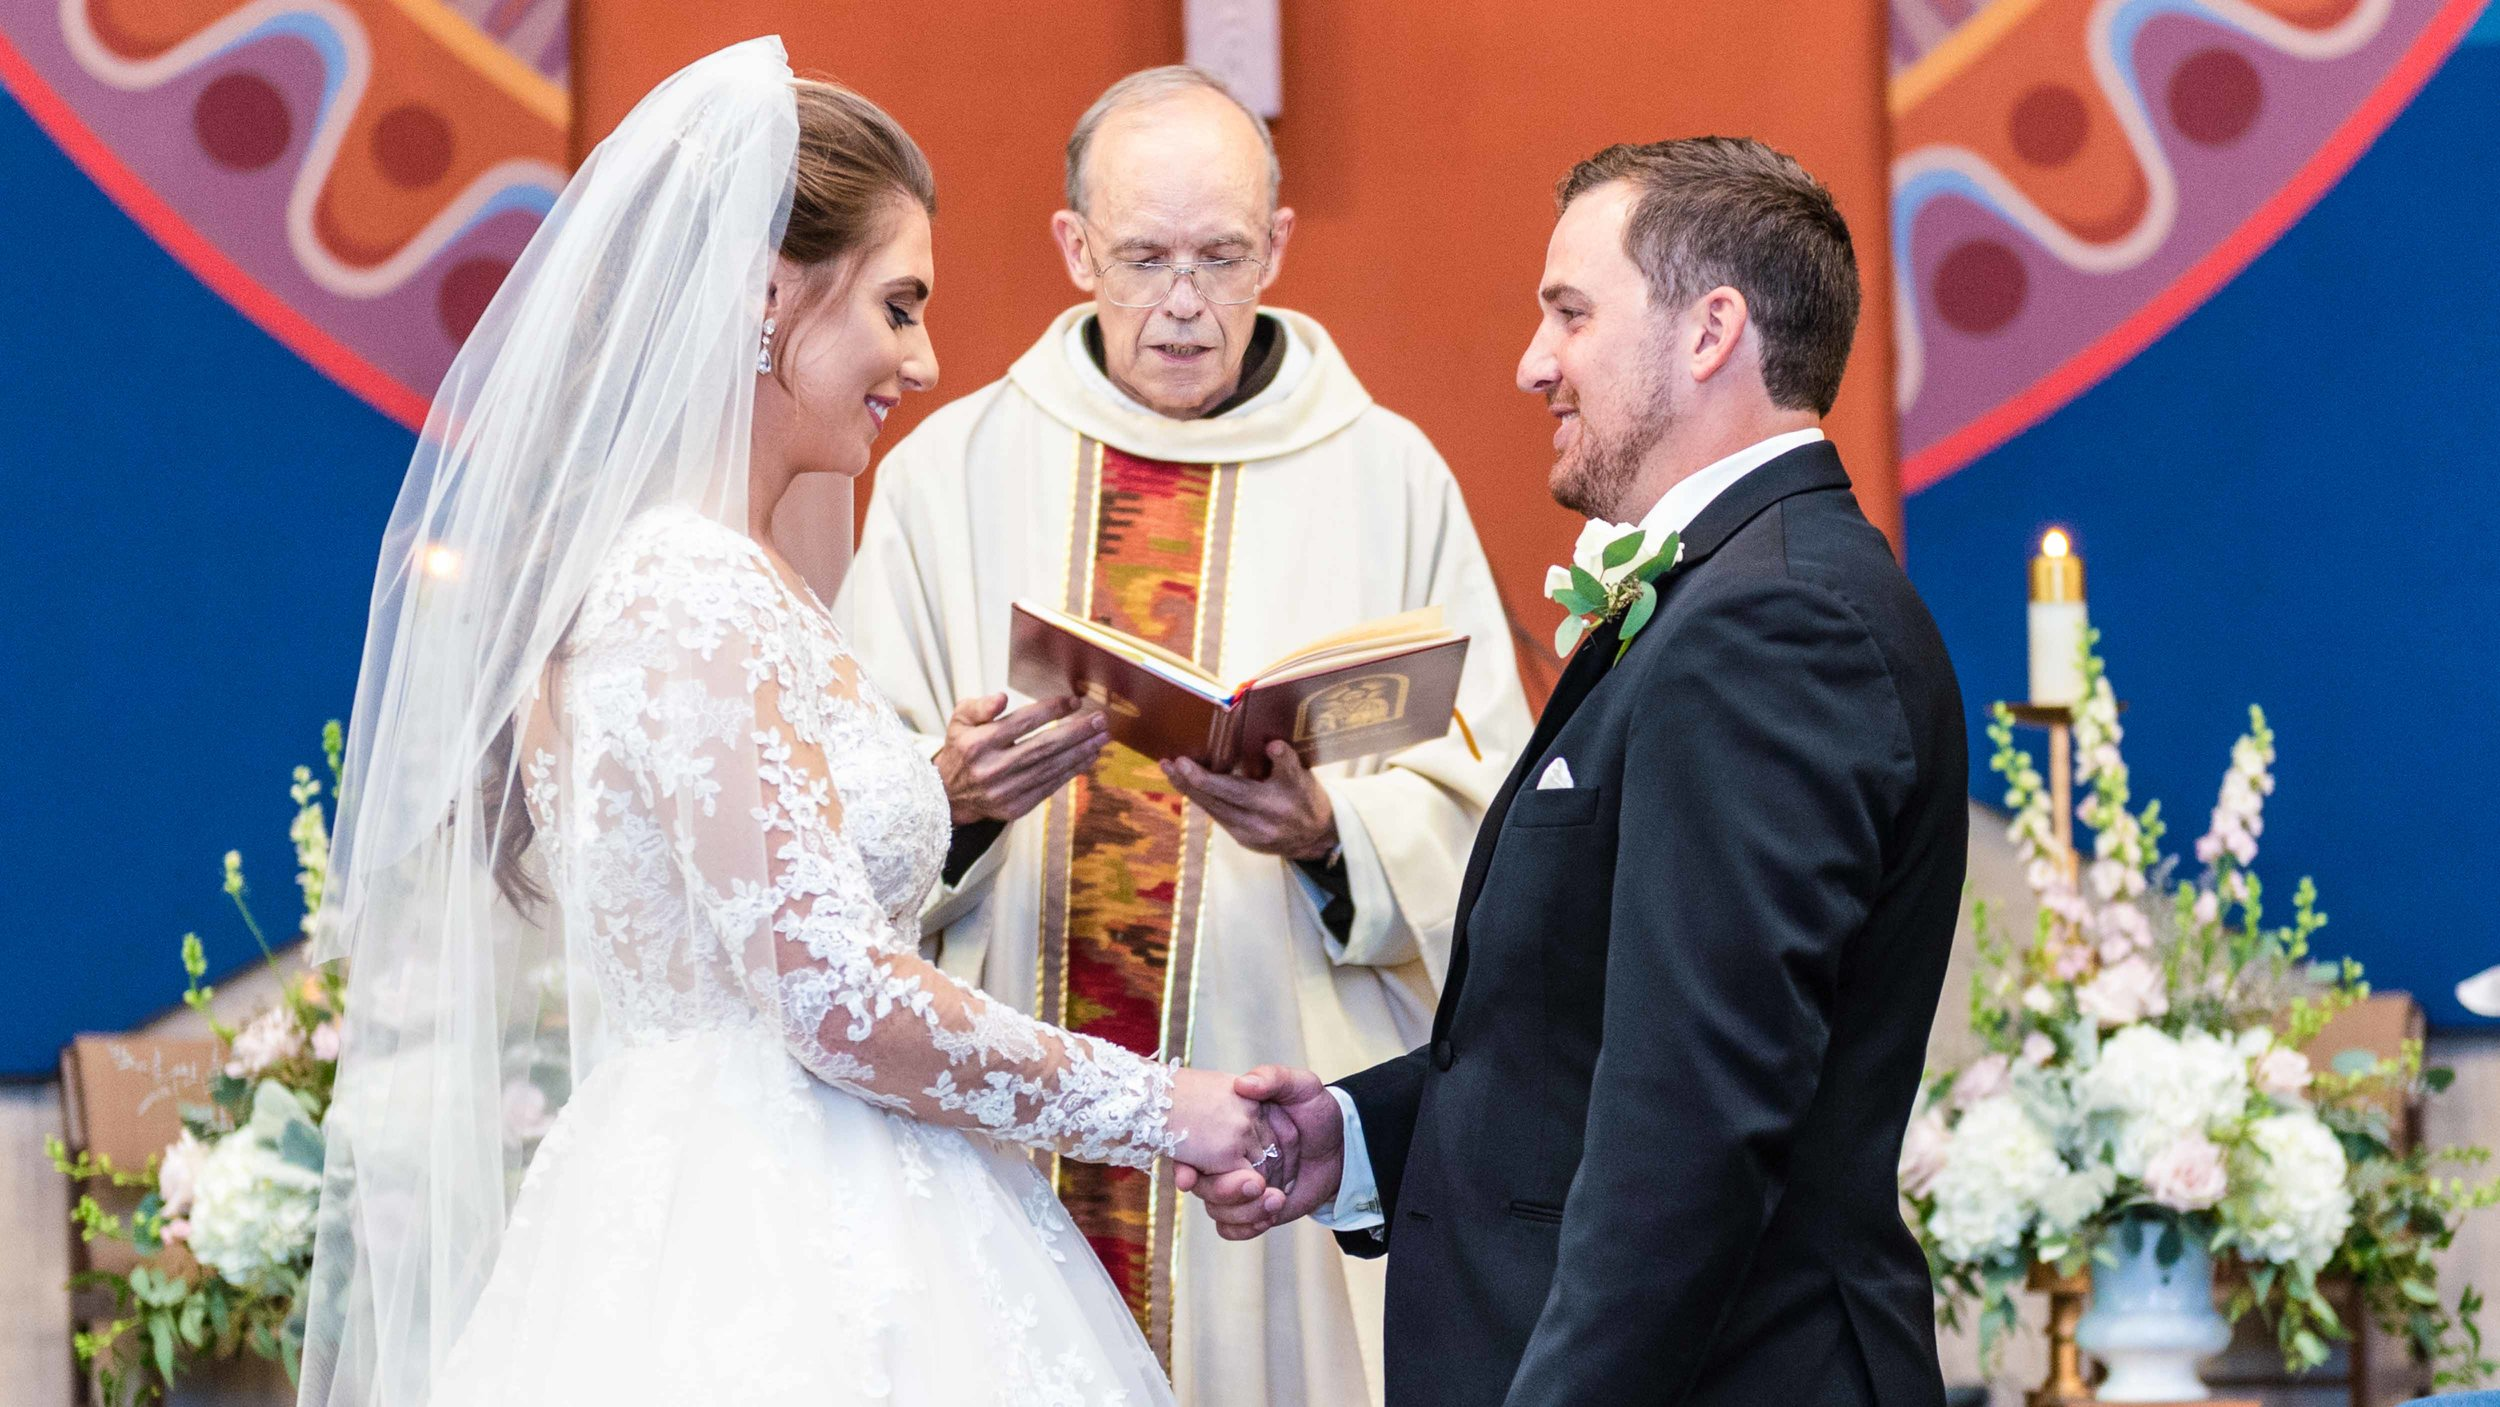 Wedding-Ceremony-Our-Lady-of-Peace-Church--7.jpg